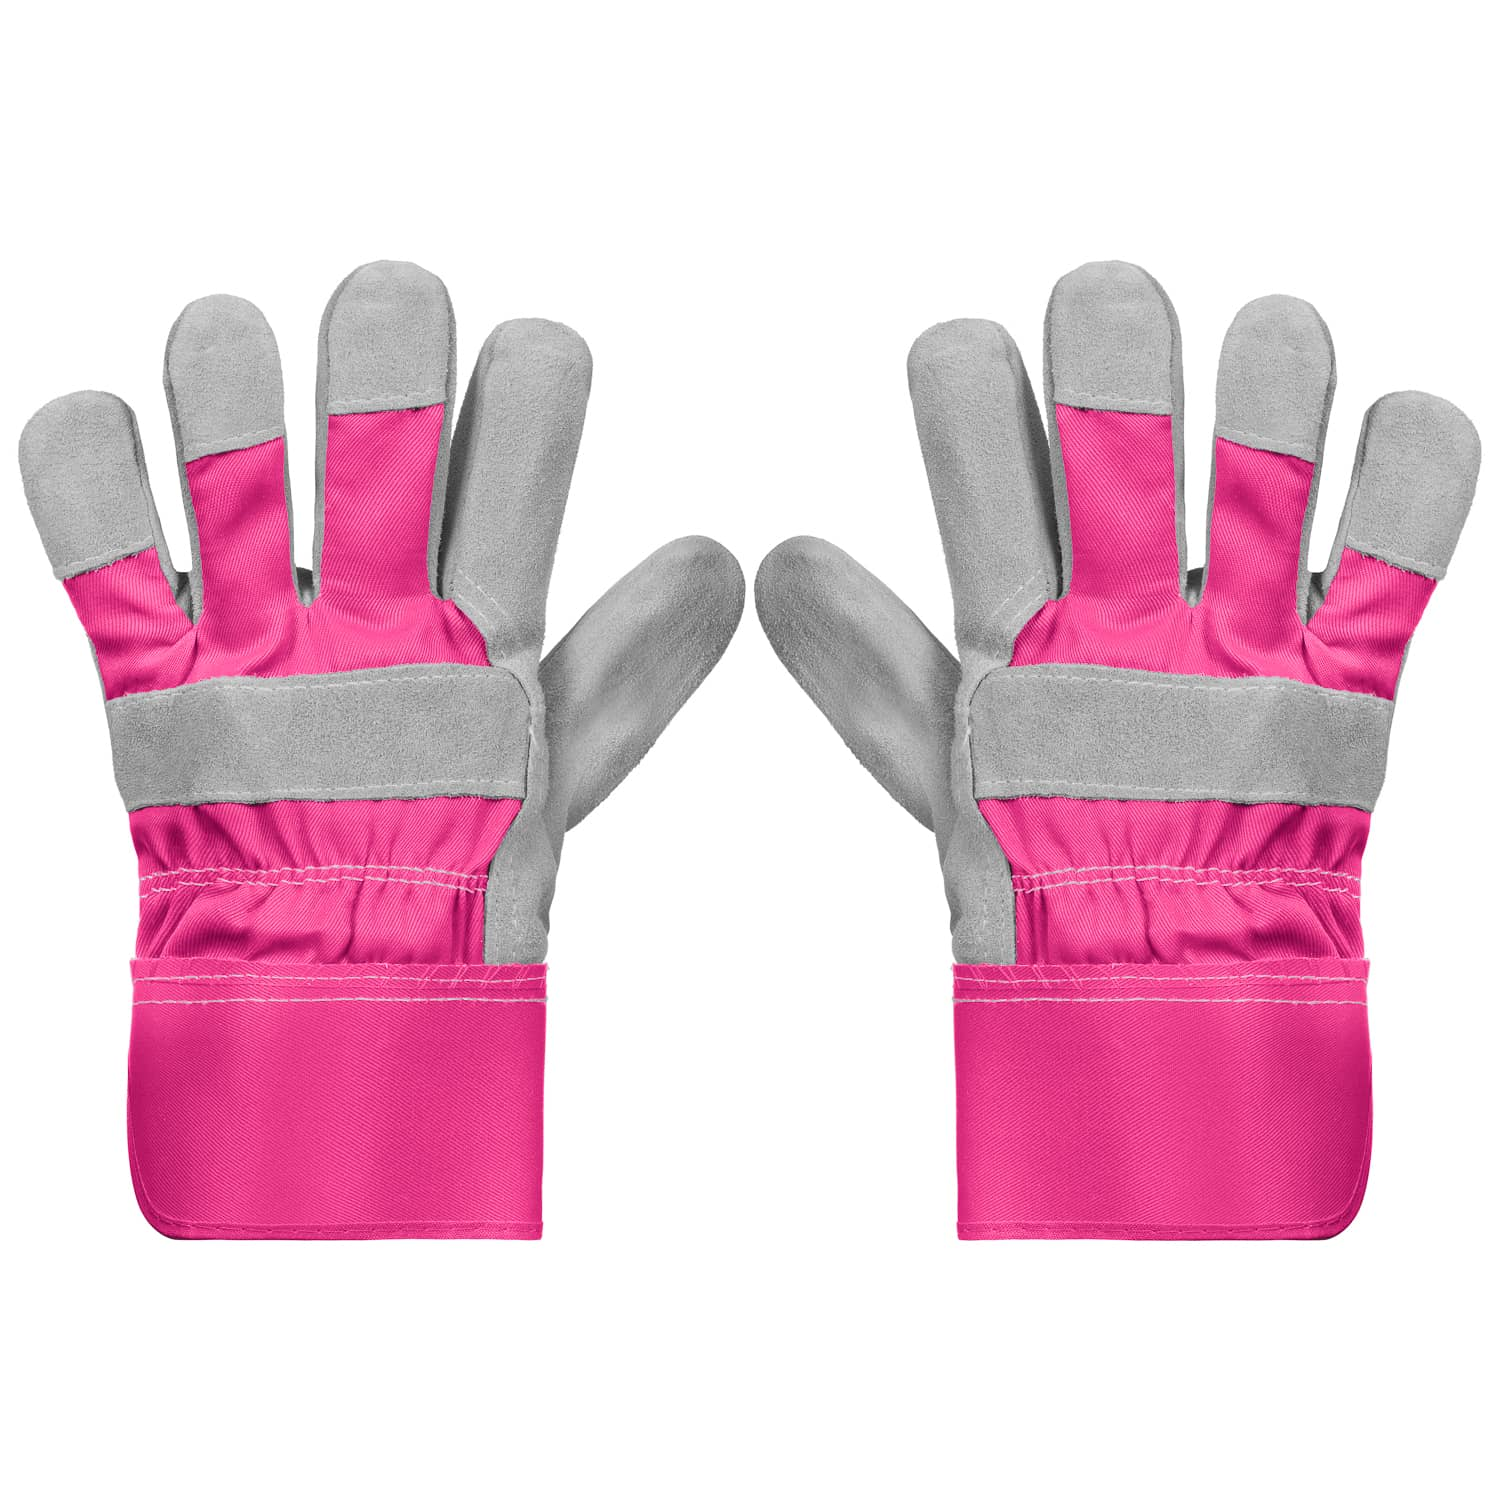 Fishing Gloves for Women Coated Grip Gloves Textured Grip Heavy-duty Pink NEW